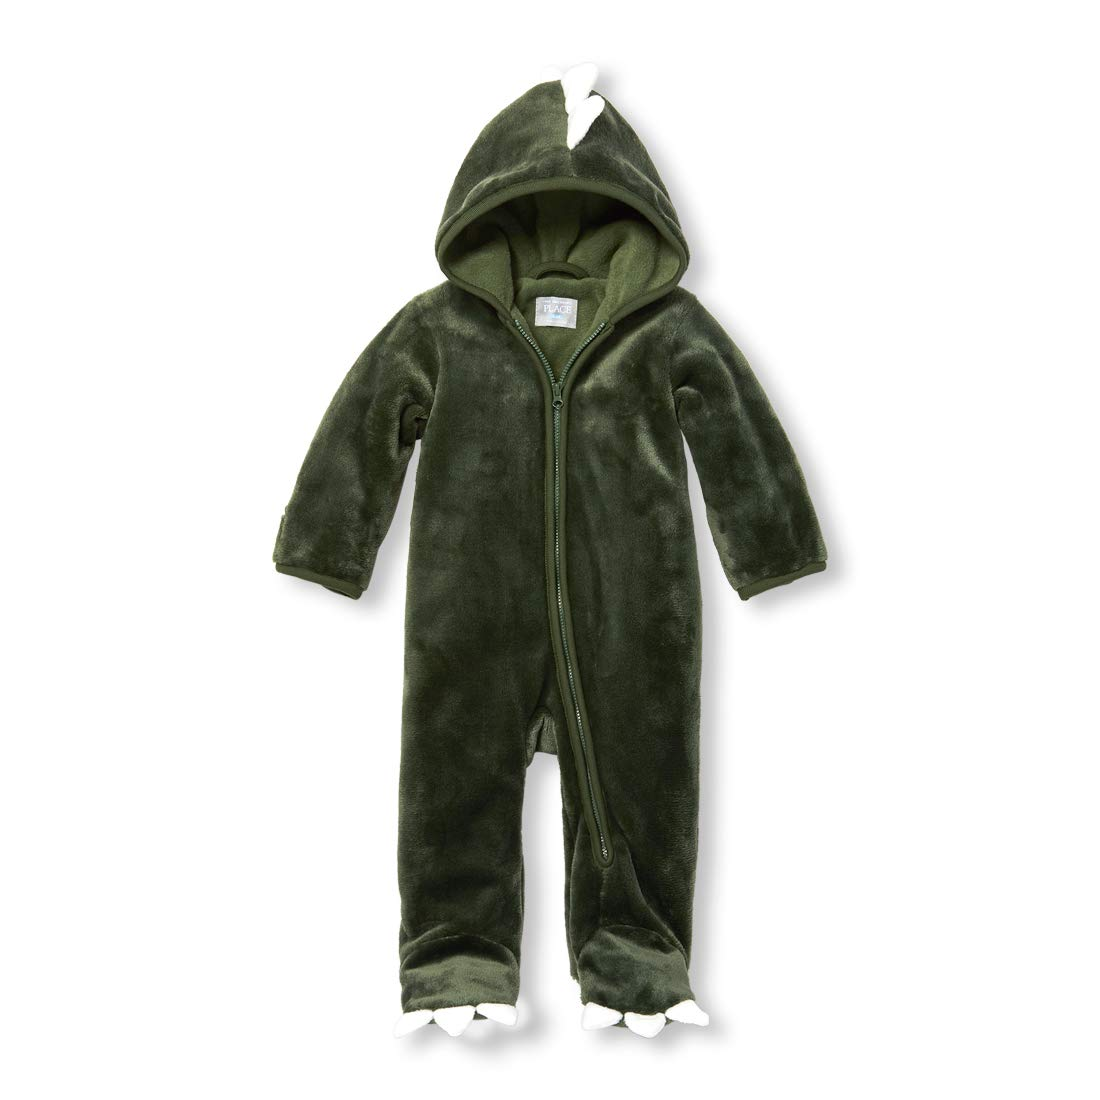 The Children's Place Baby Boys Animal Bunting Snow Suit, Garden Cypress, 9-12 MOS by The Children's Place